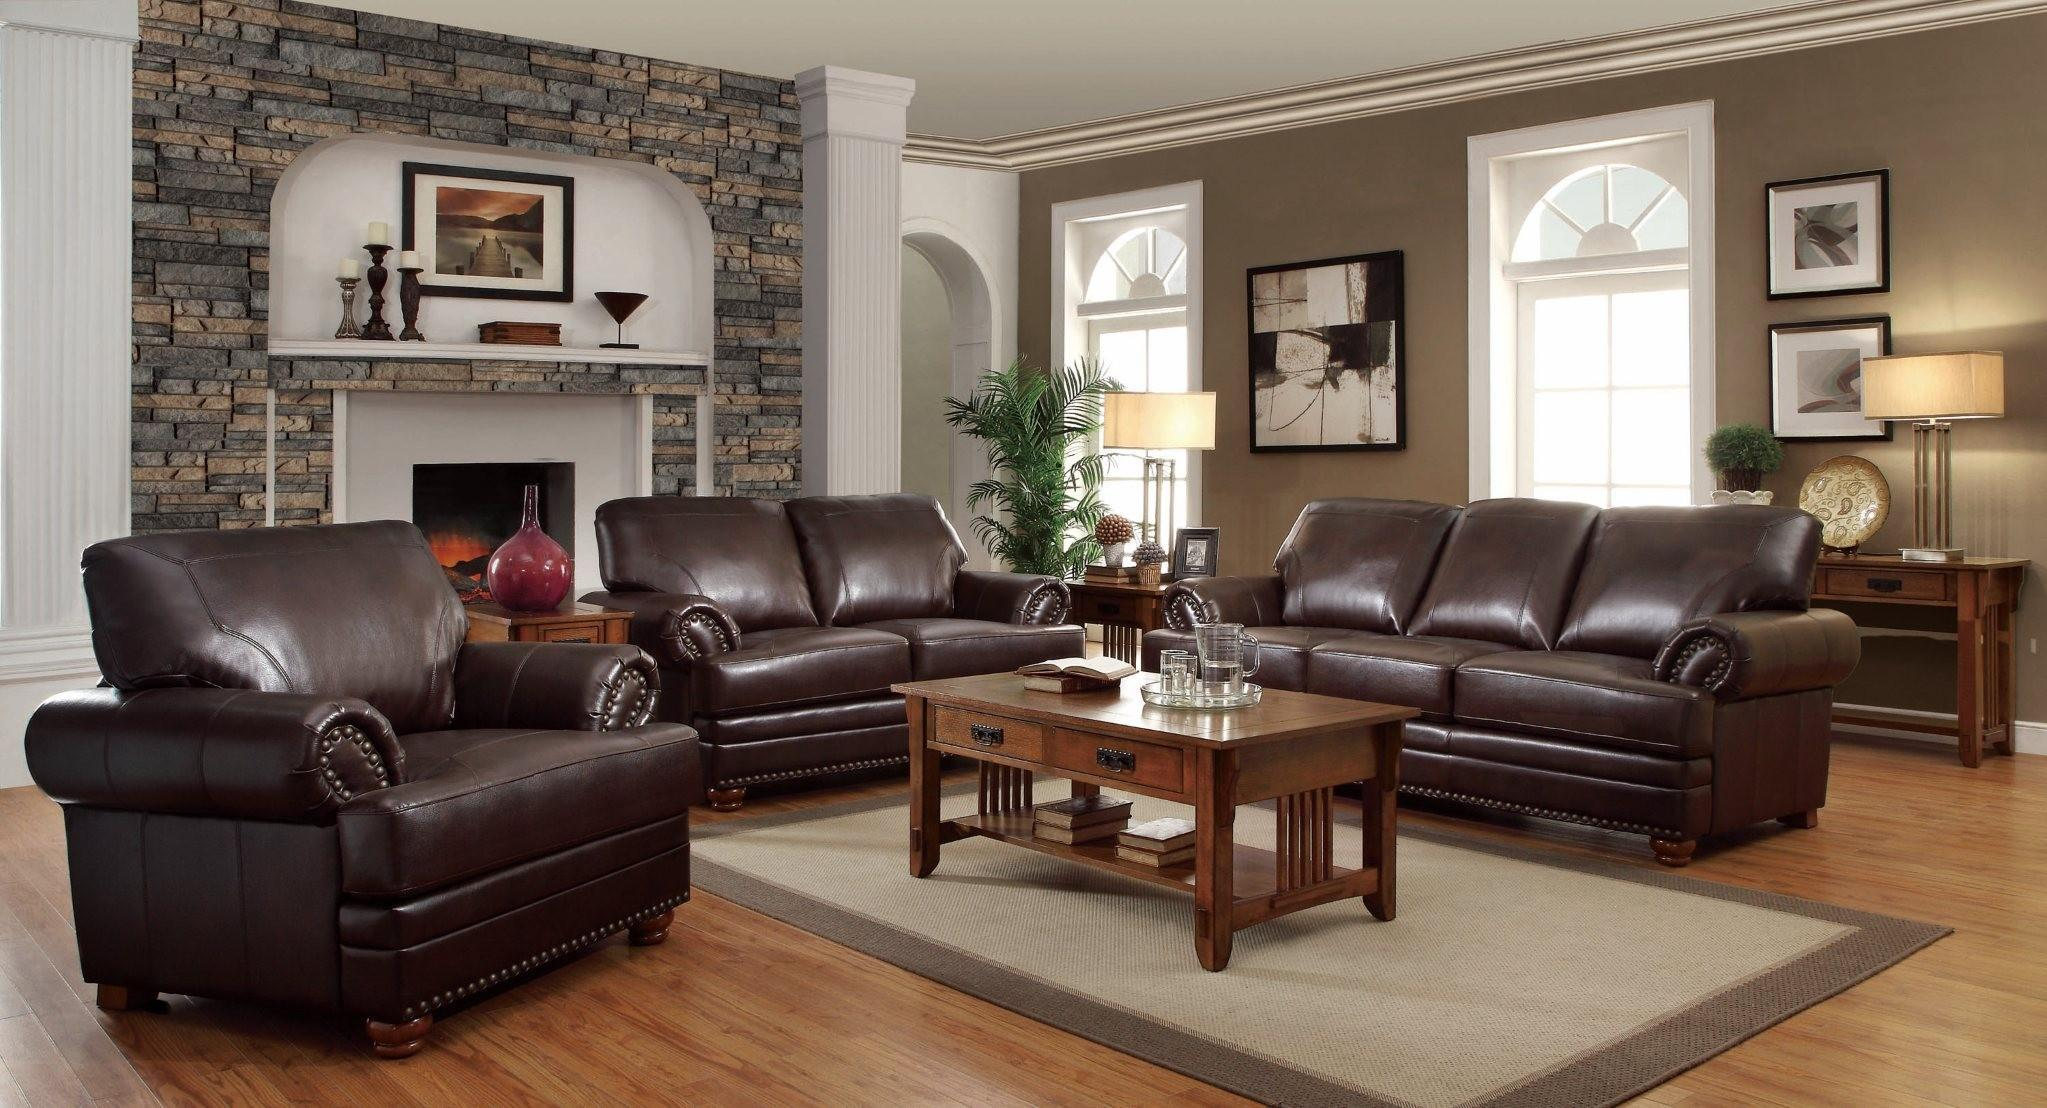 Coaster Colton Stationary Living Room Group Dream Home Furniture Upholstery Group